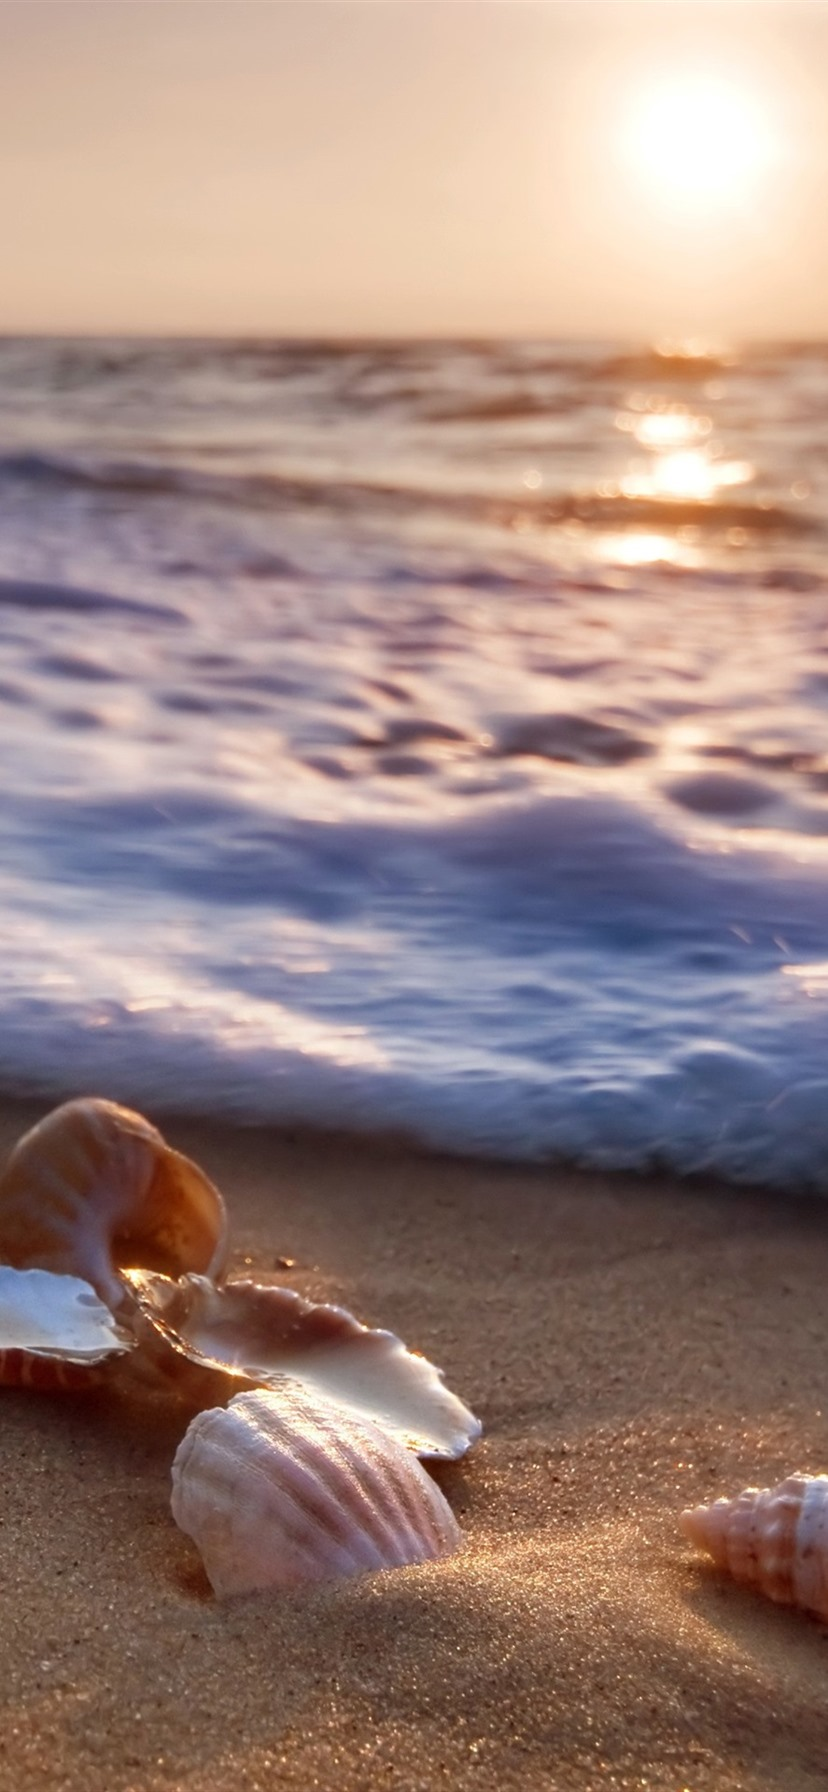 Wallpaper Sea Beach Seashells Waves Foam 3840x2160 Uhd 4k Picture Image